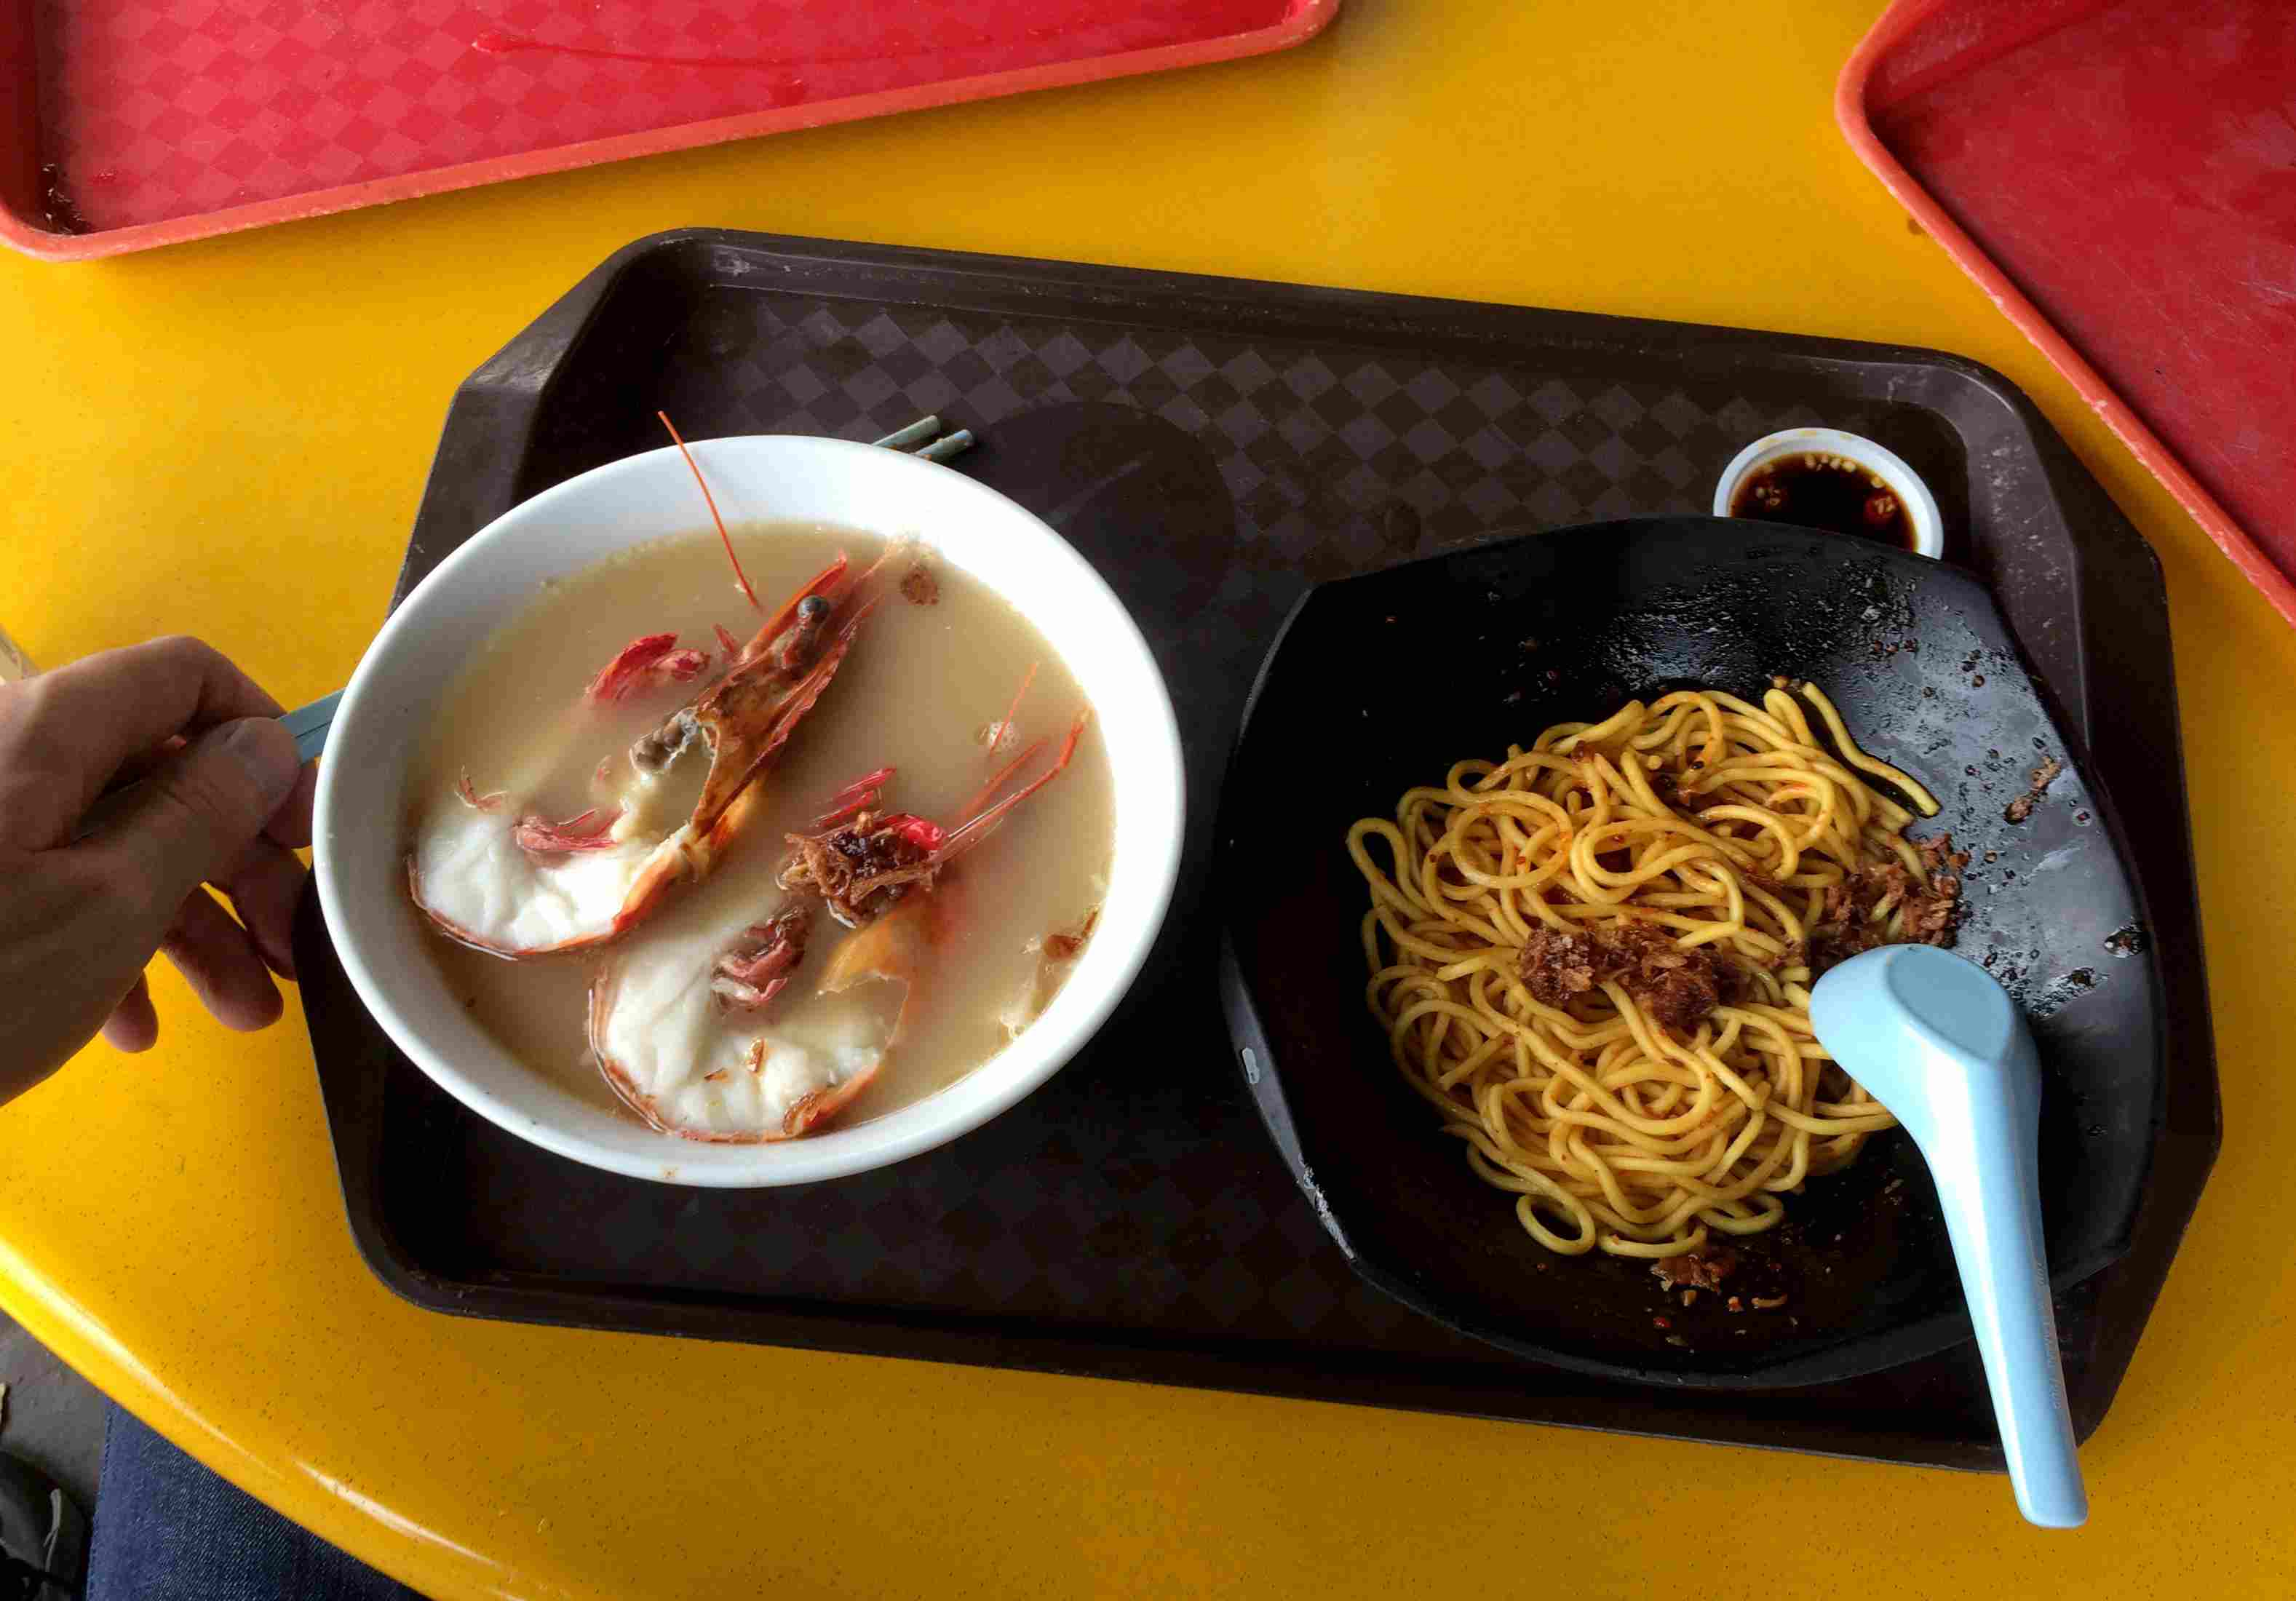 A meal at the Zion Riverside Food Centre